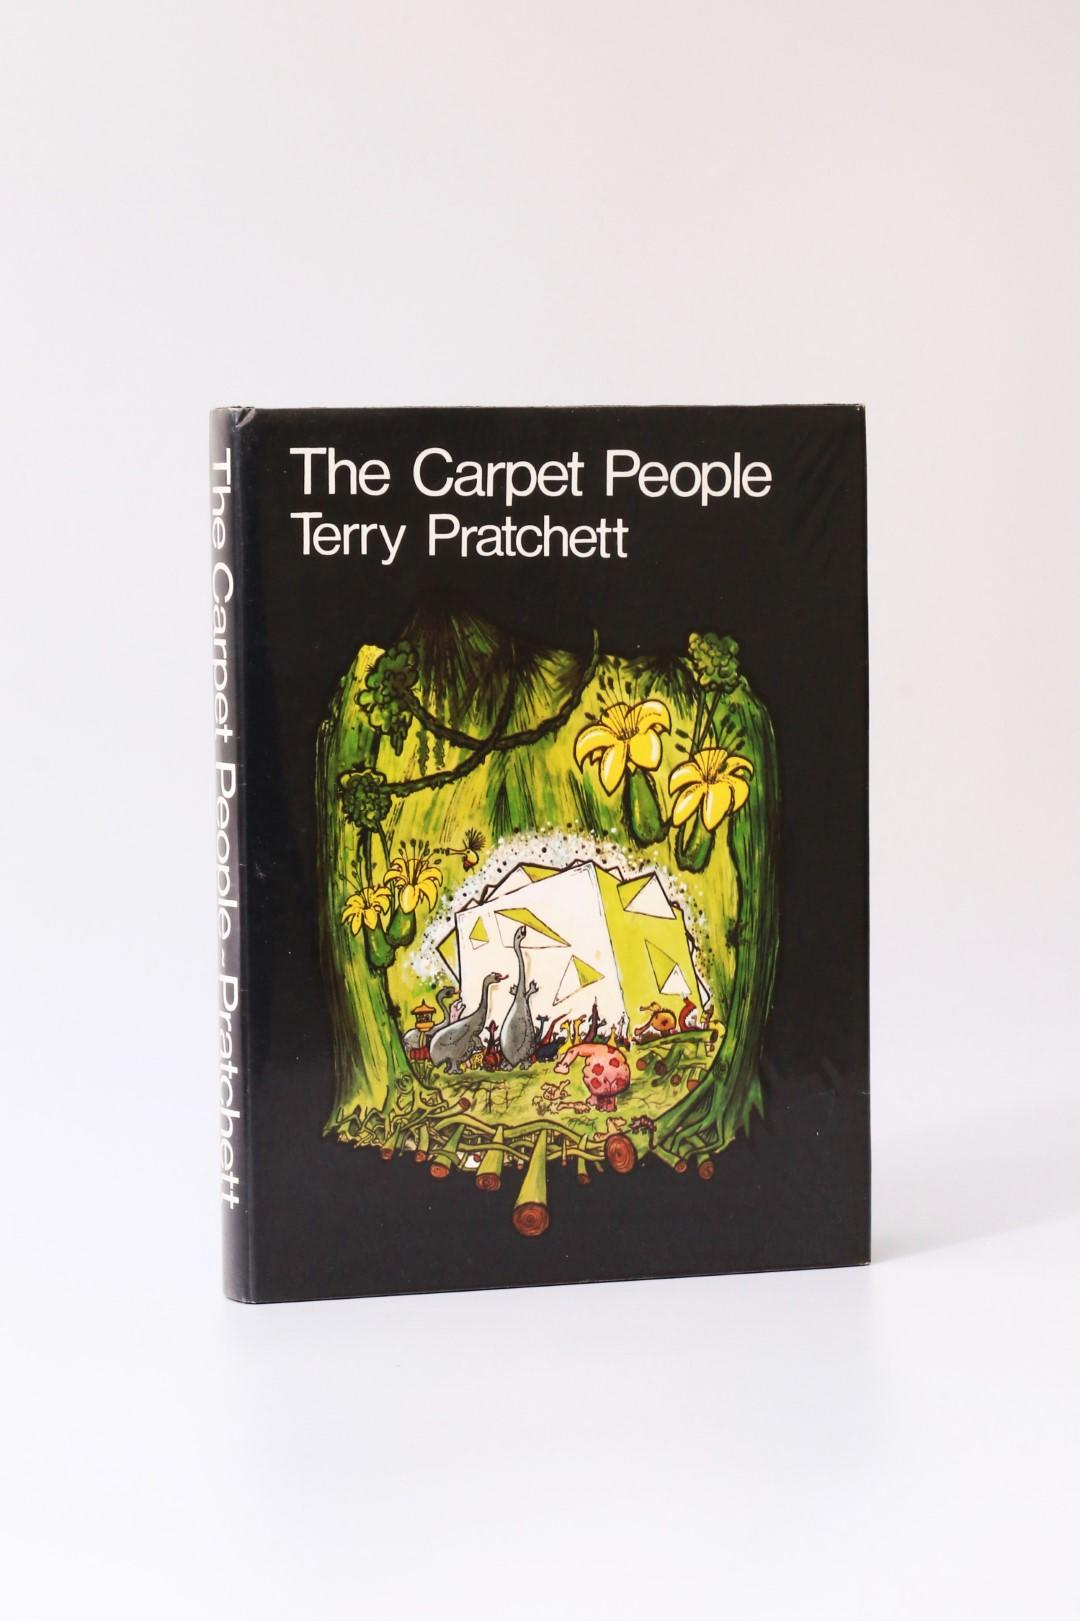 Terry Pratchett - The Carpet People - Colin Smythe, 1971, Signed First Edition.